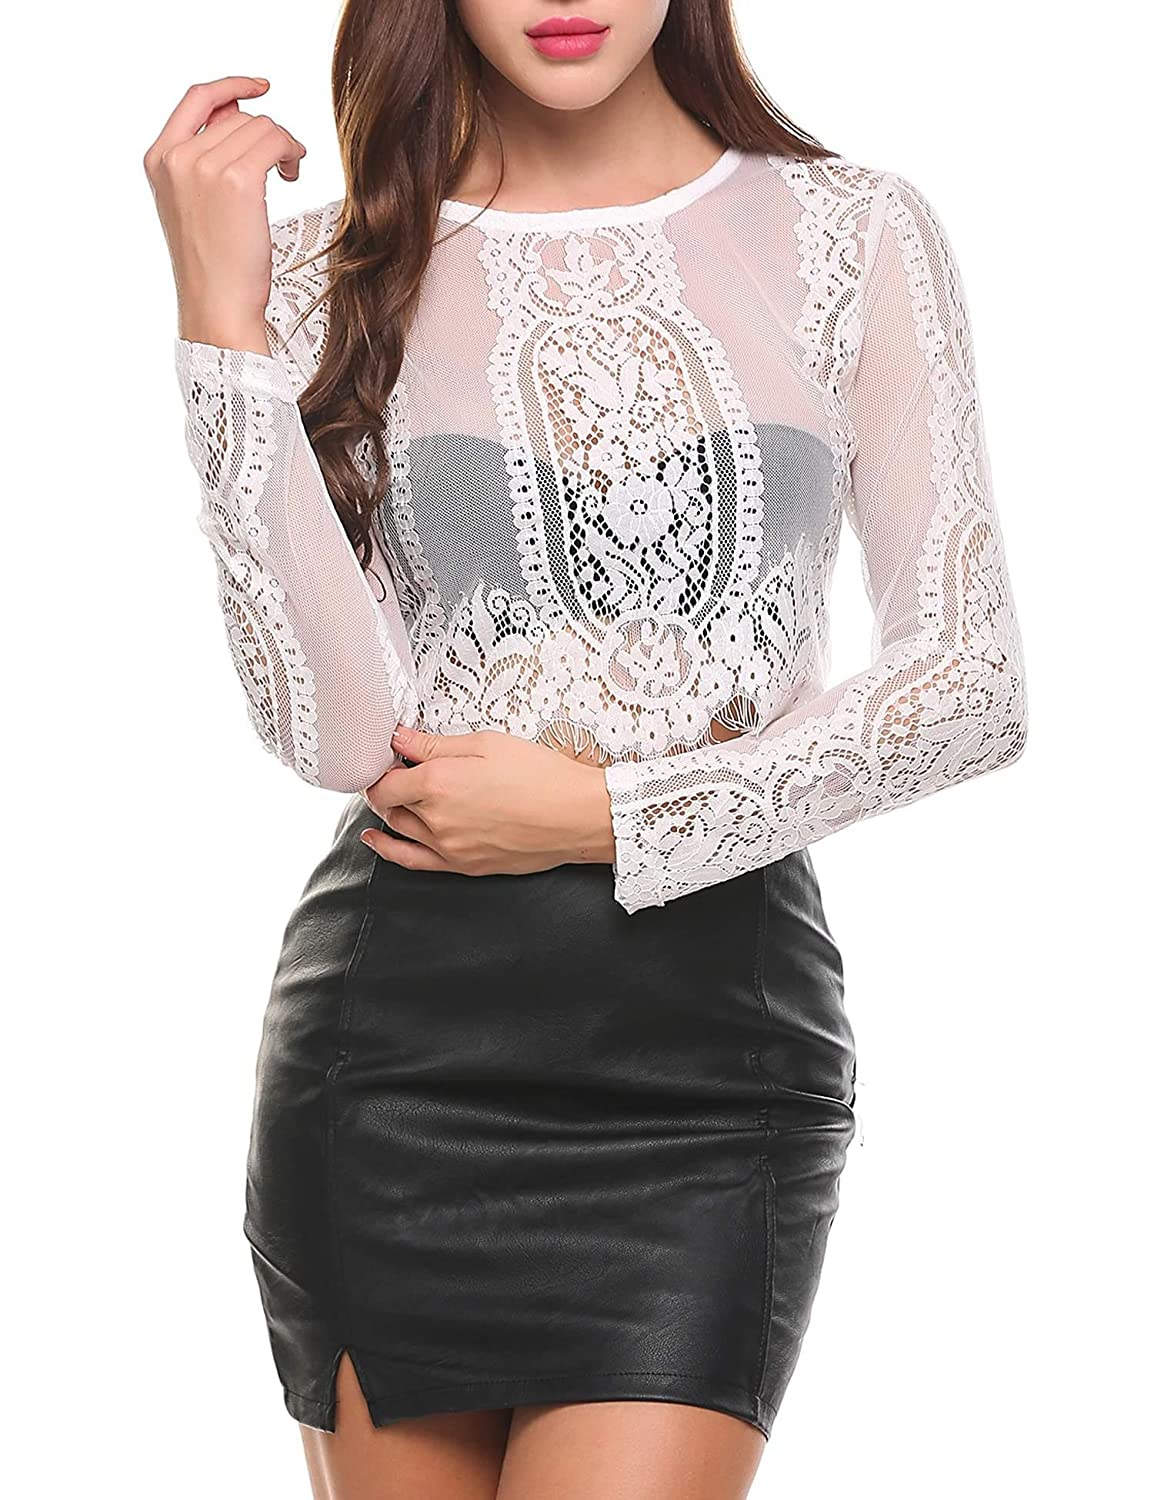 1f62eea32cc SoTeer Women s Fashion Slim Fit Lace Long Sleeve Short Sleeve Sexy Sheer  Blouse Mesh Lace Crop Top Shirt (S-XXL) at Amazon Women s Clothing store